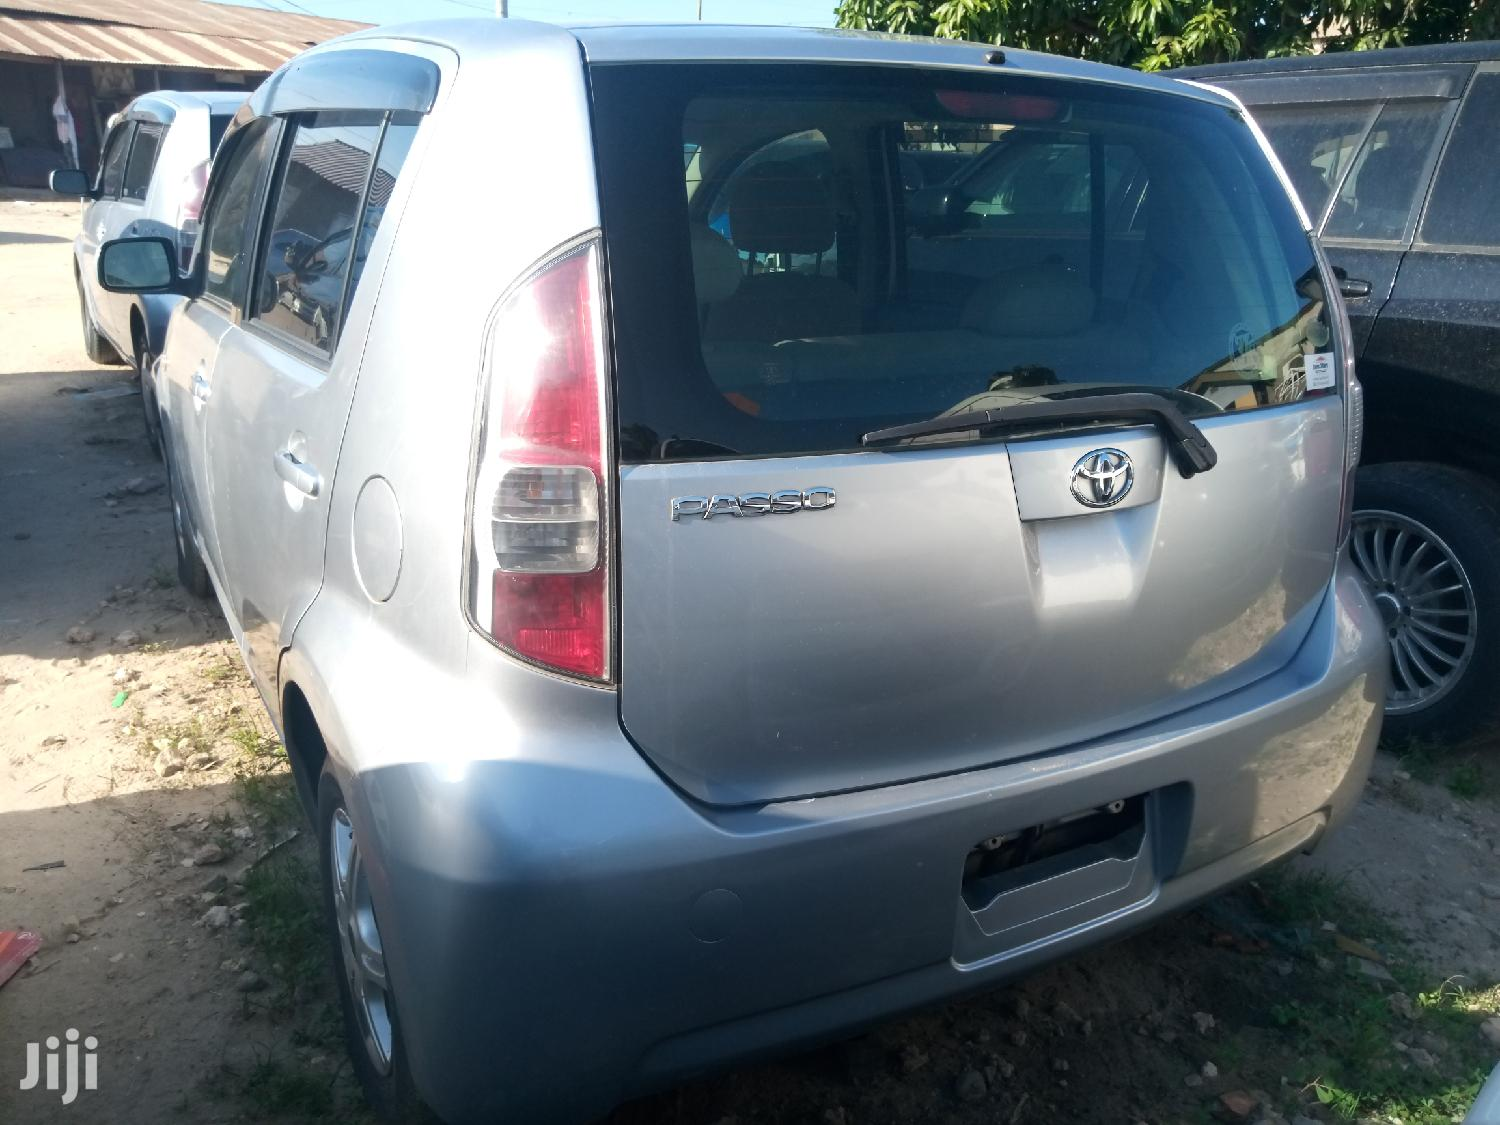 Archive: New Toyota Passo 2005 Silver